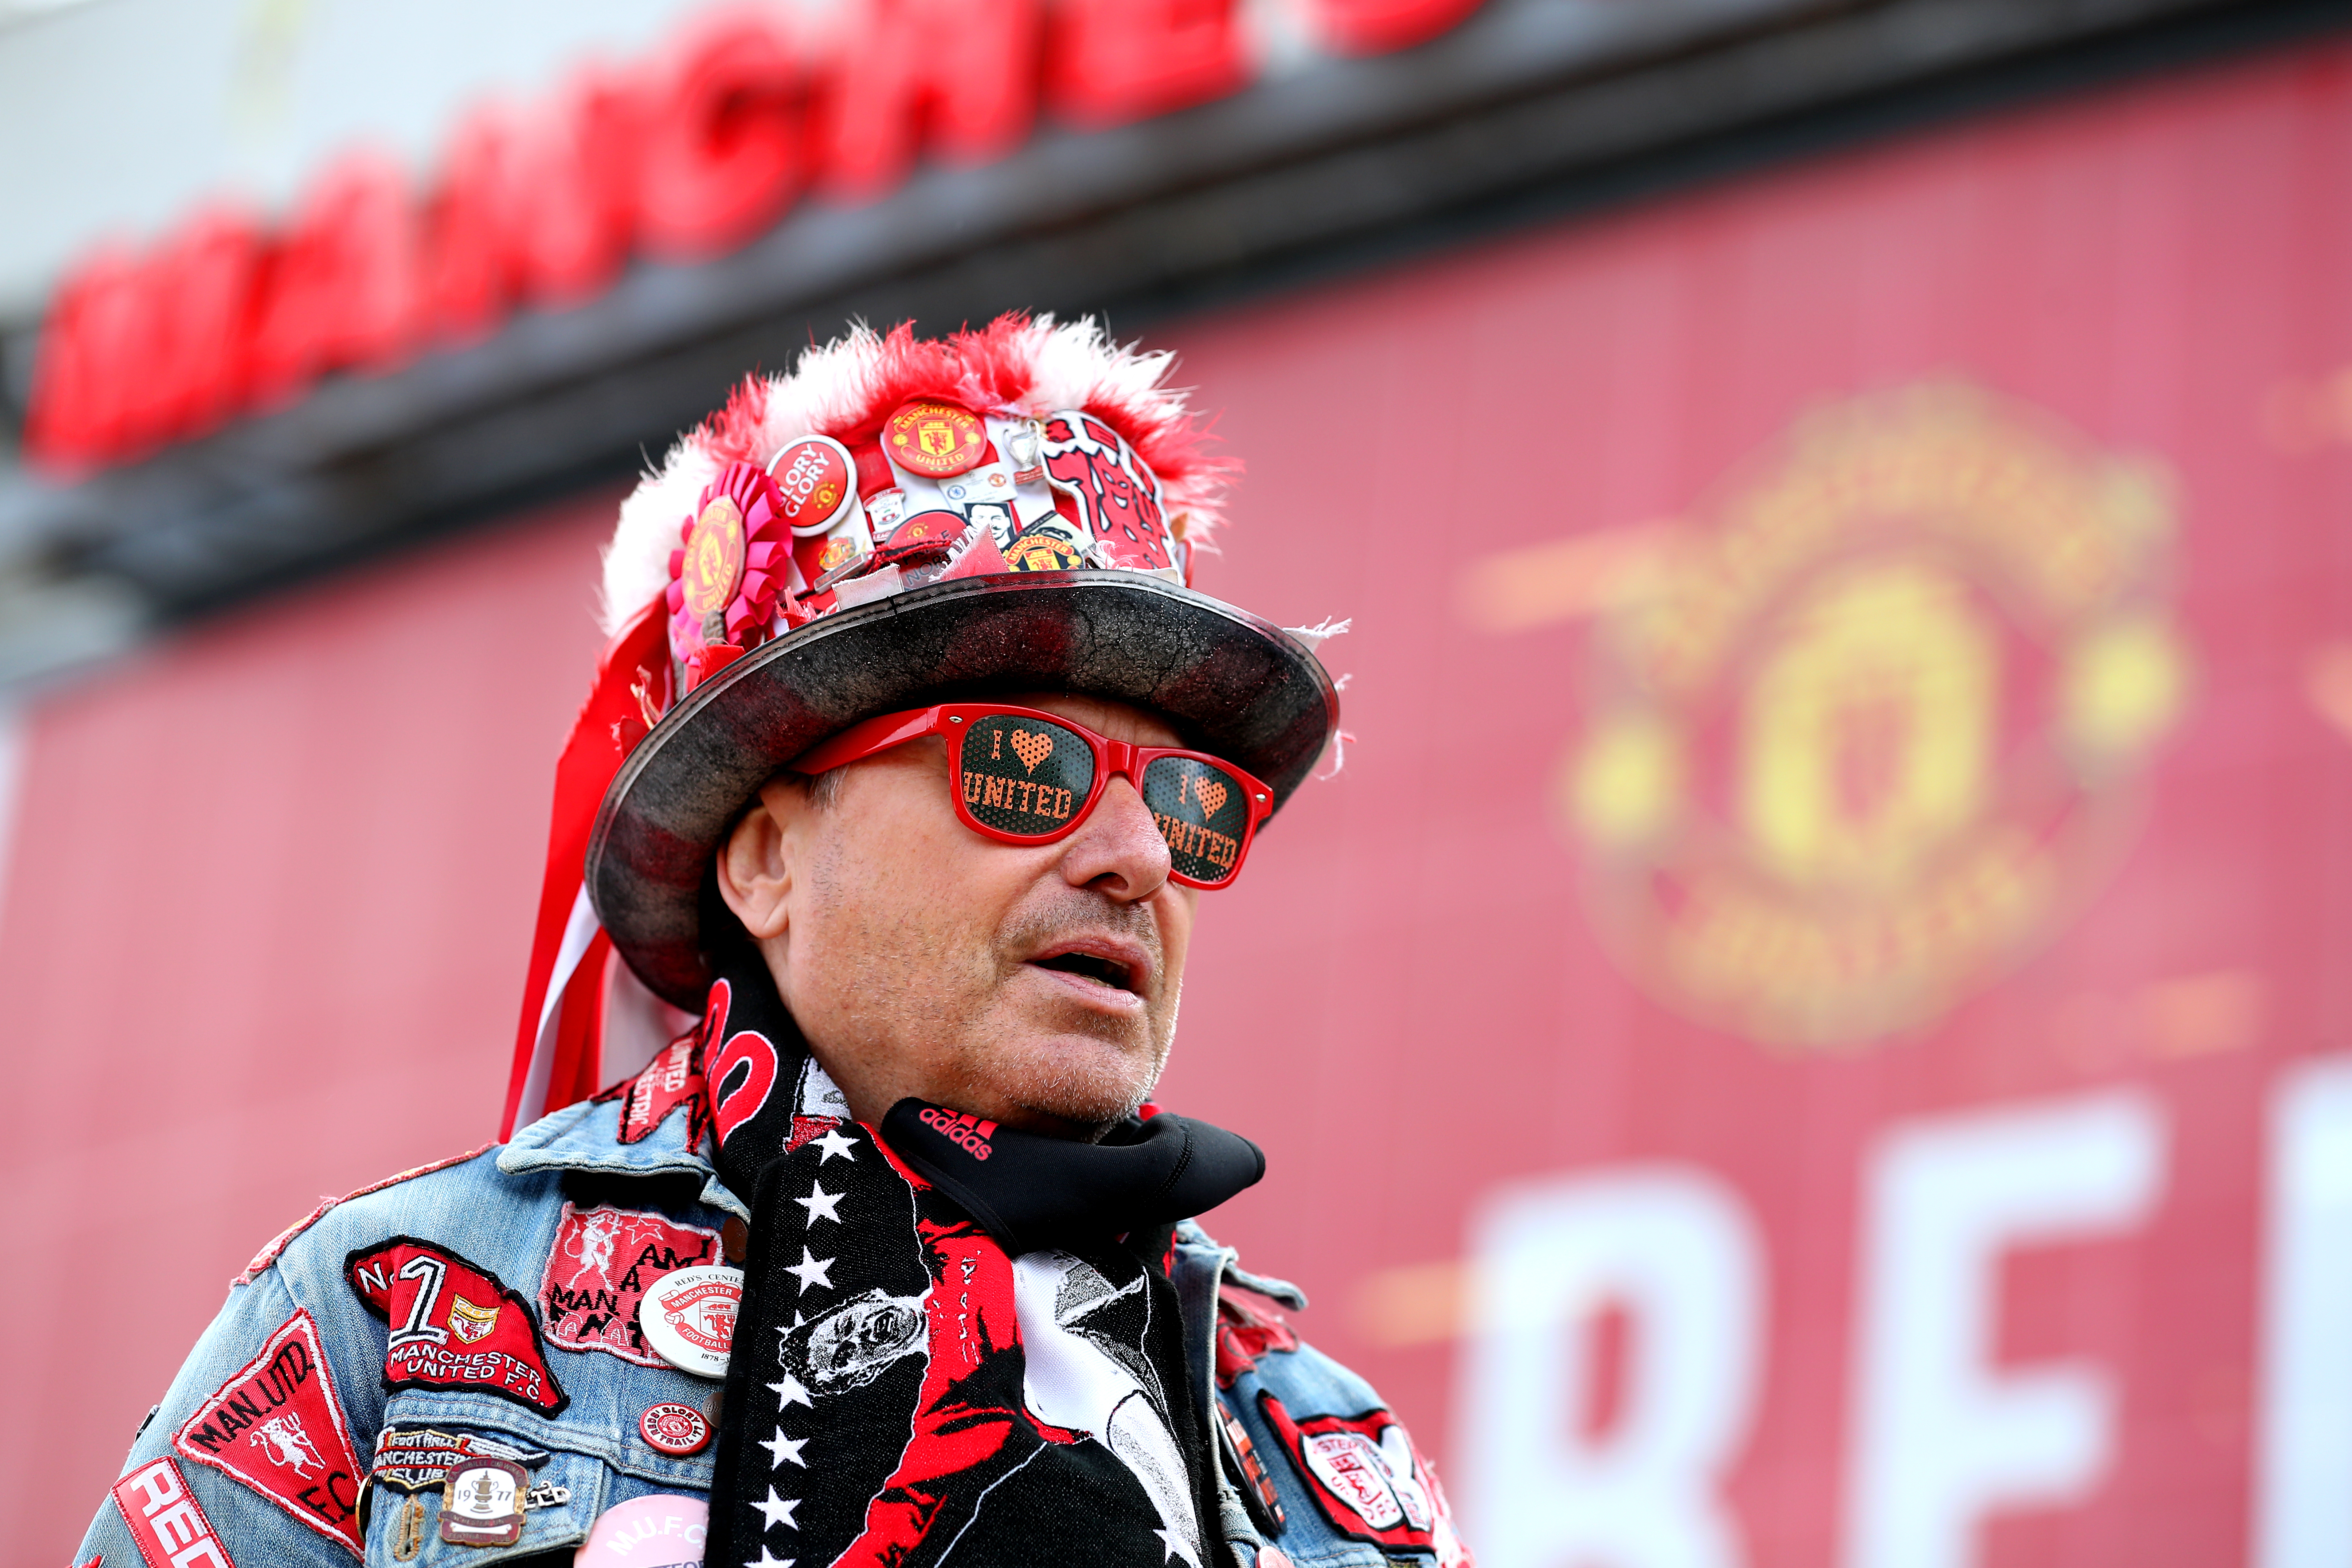 <p>A Manchester United fan arrives at the stadium before the Premier League match at Old Trafford, Manchester. Picture date: Tuesday May 18, 2021.</p>